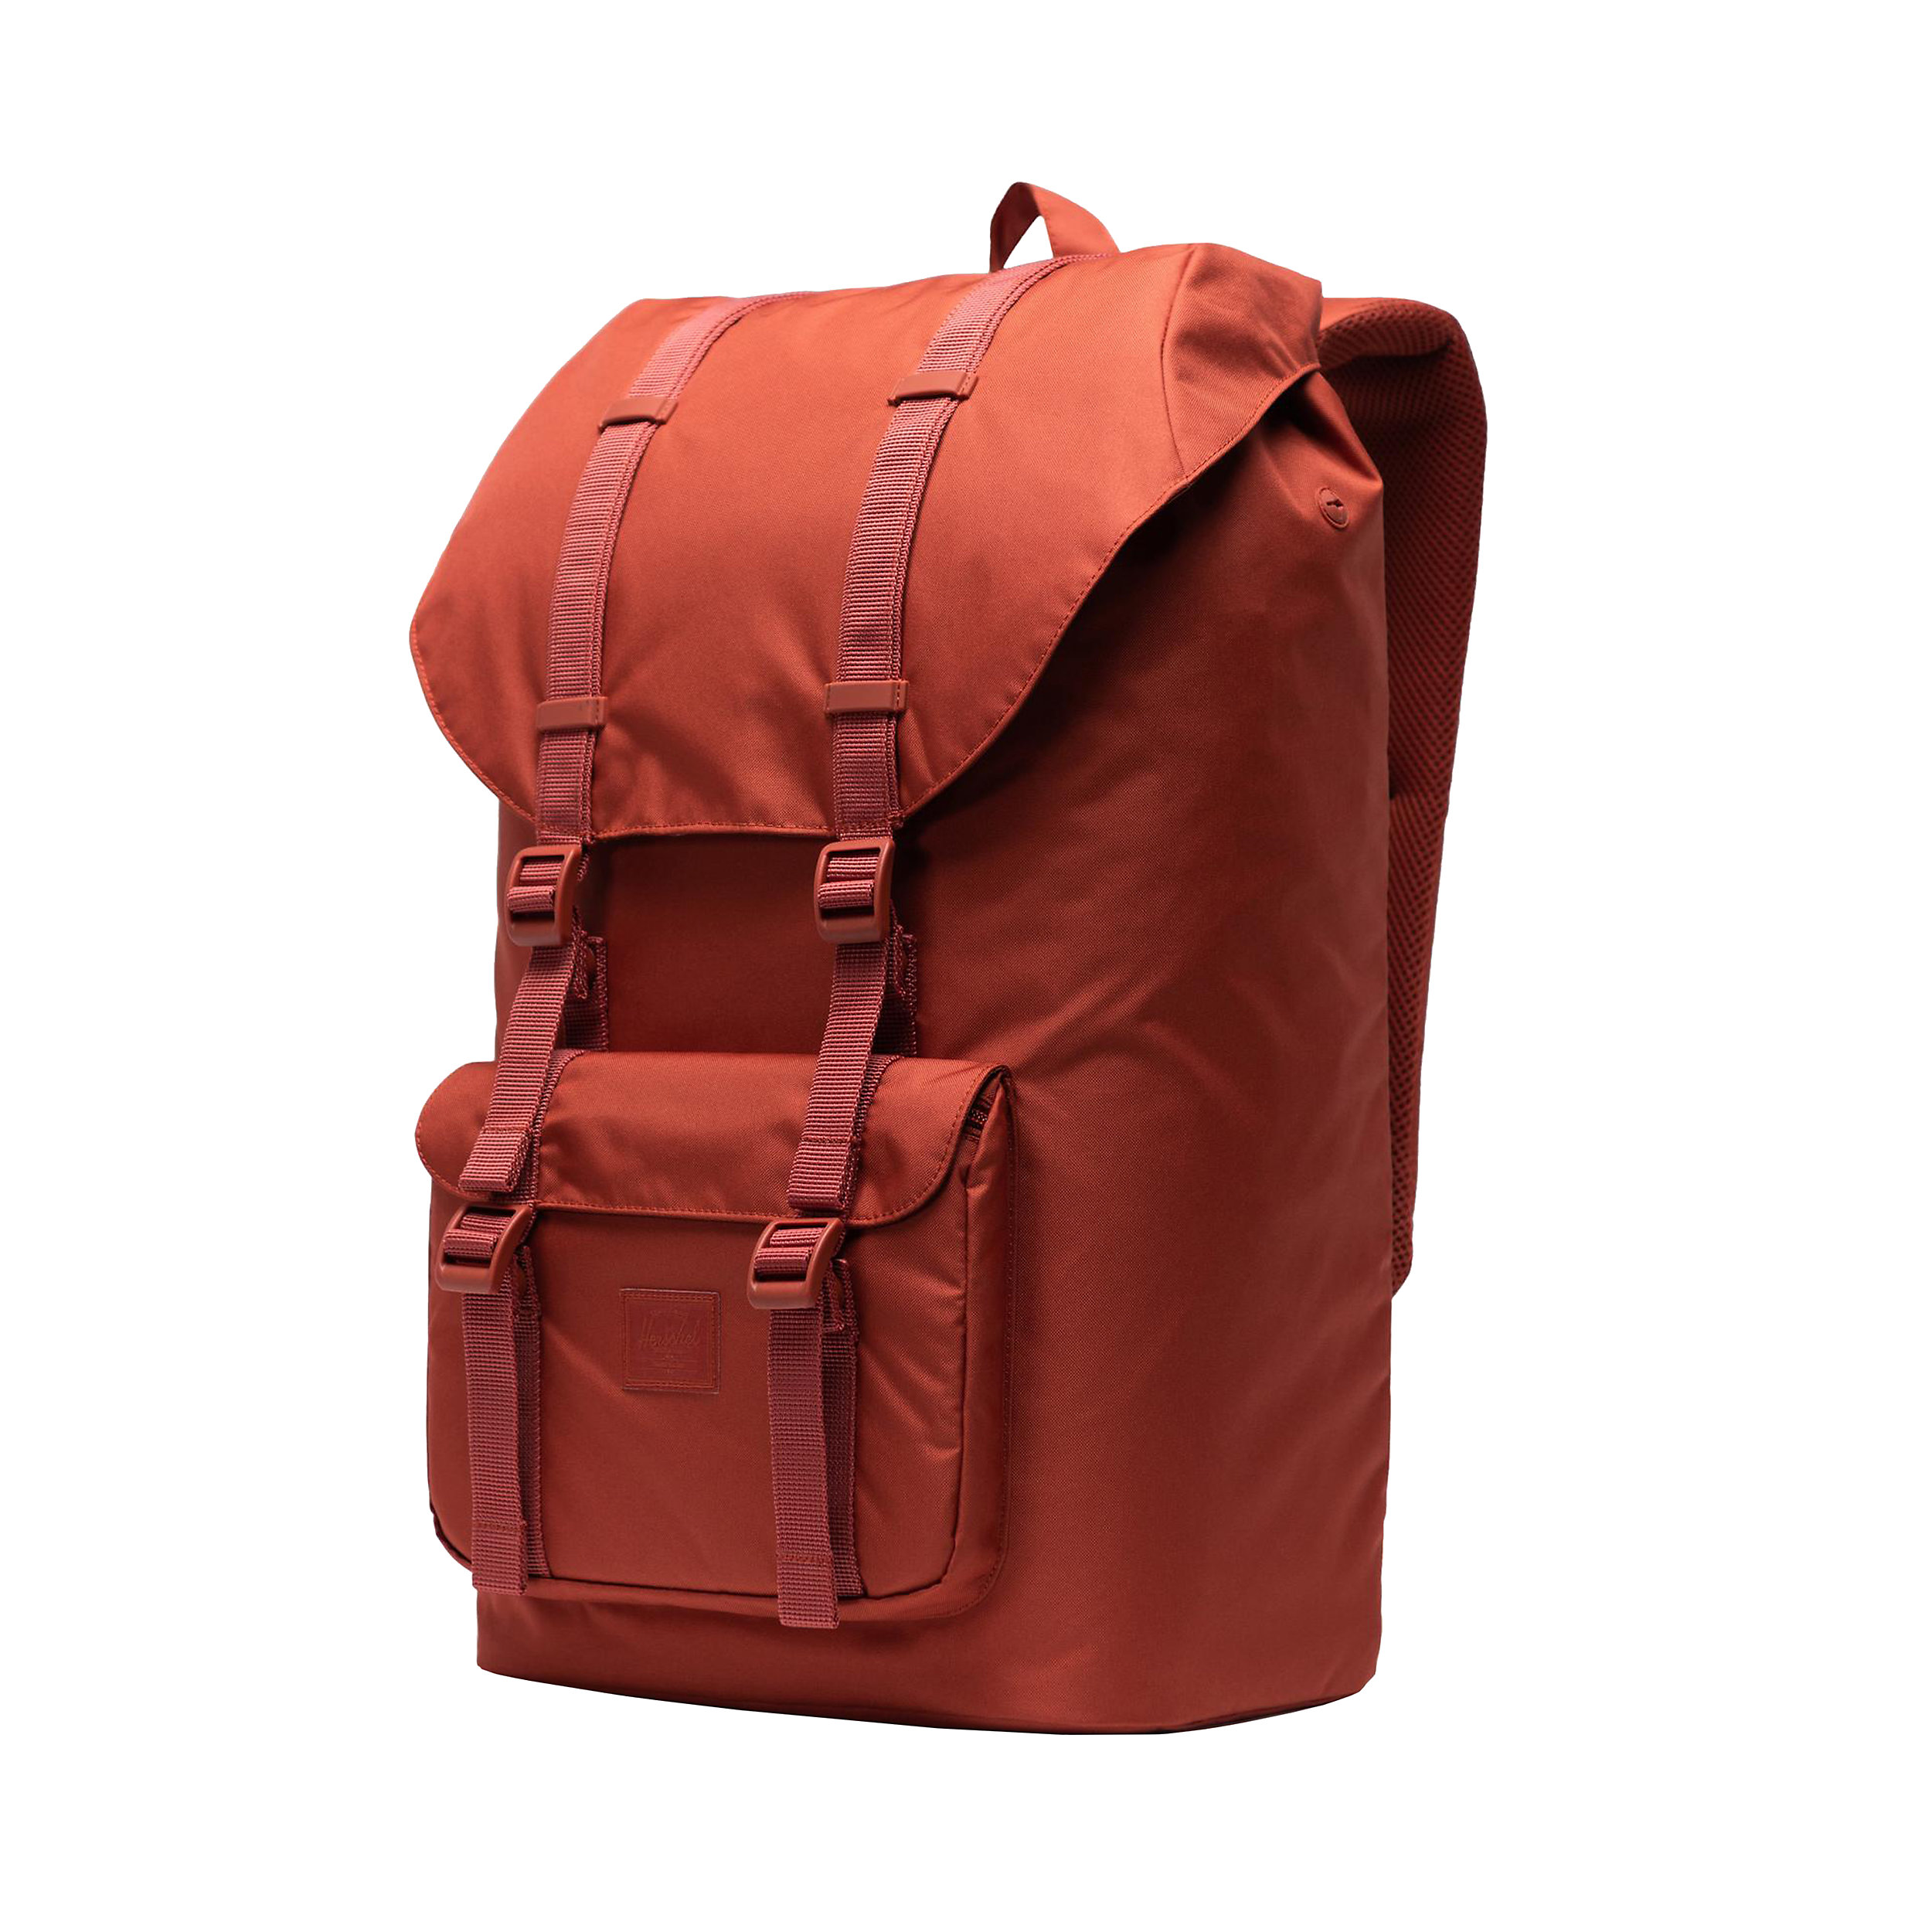 "Backpack Little America Light 15"" Classic Light 25 Liter"